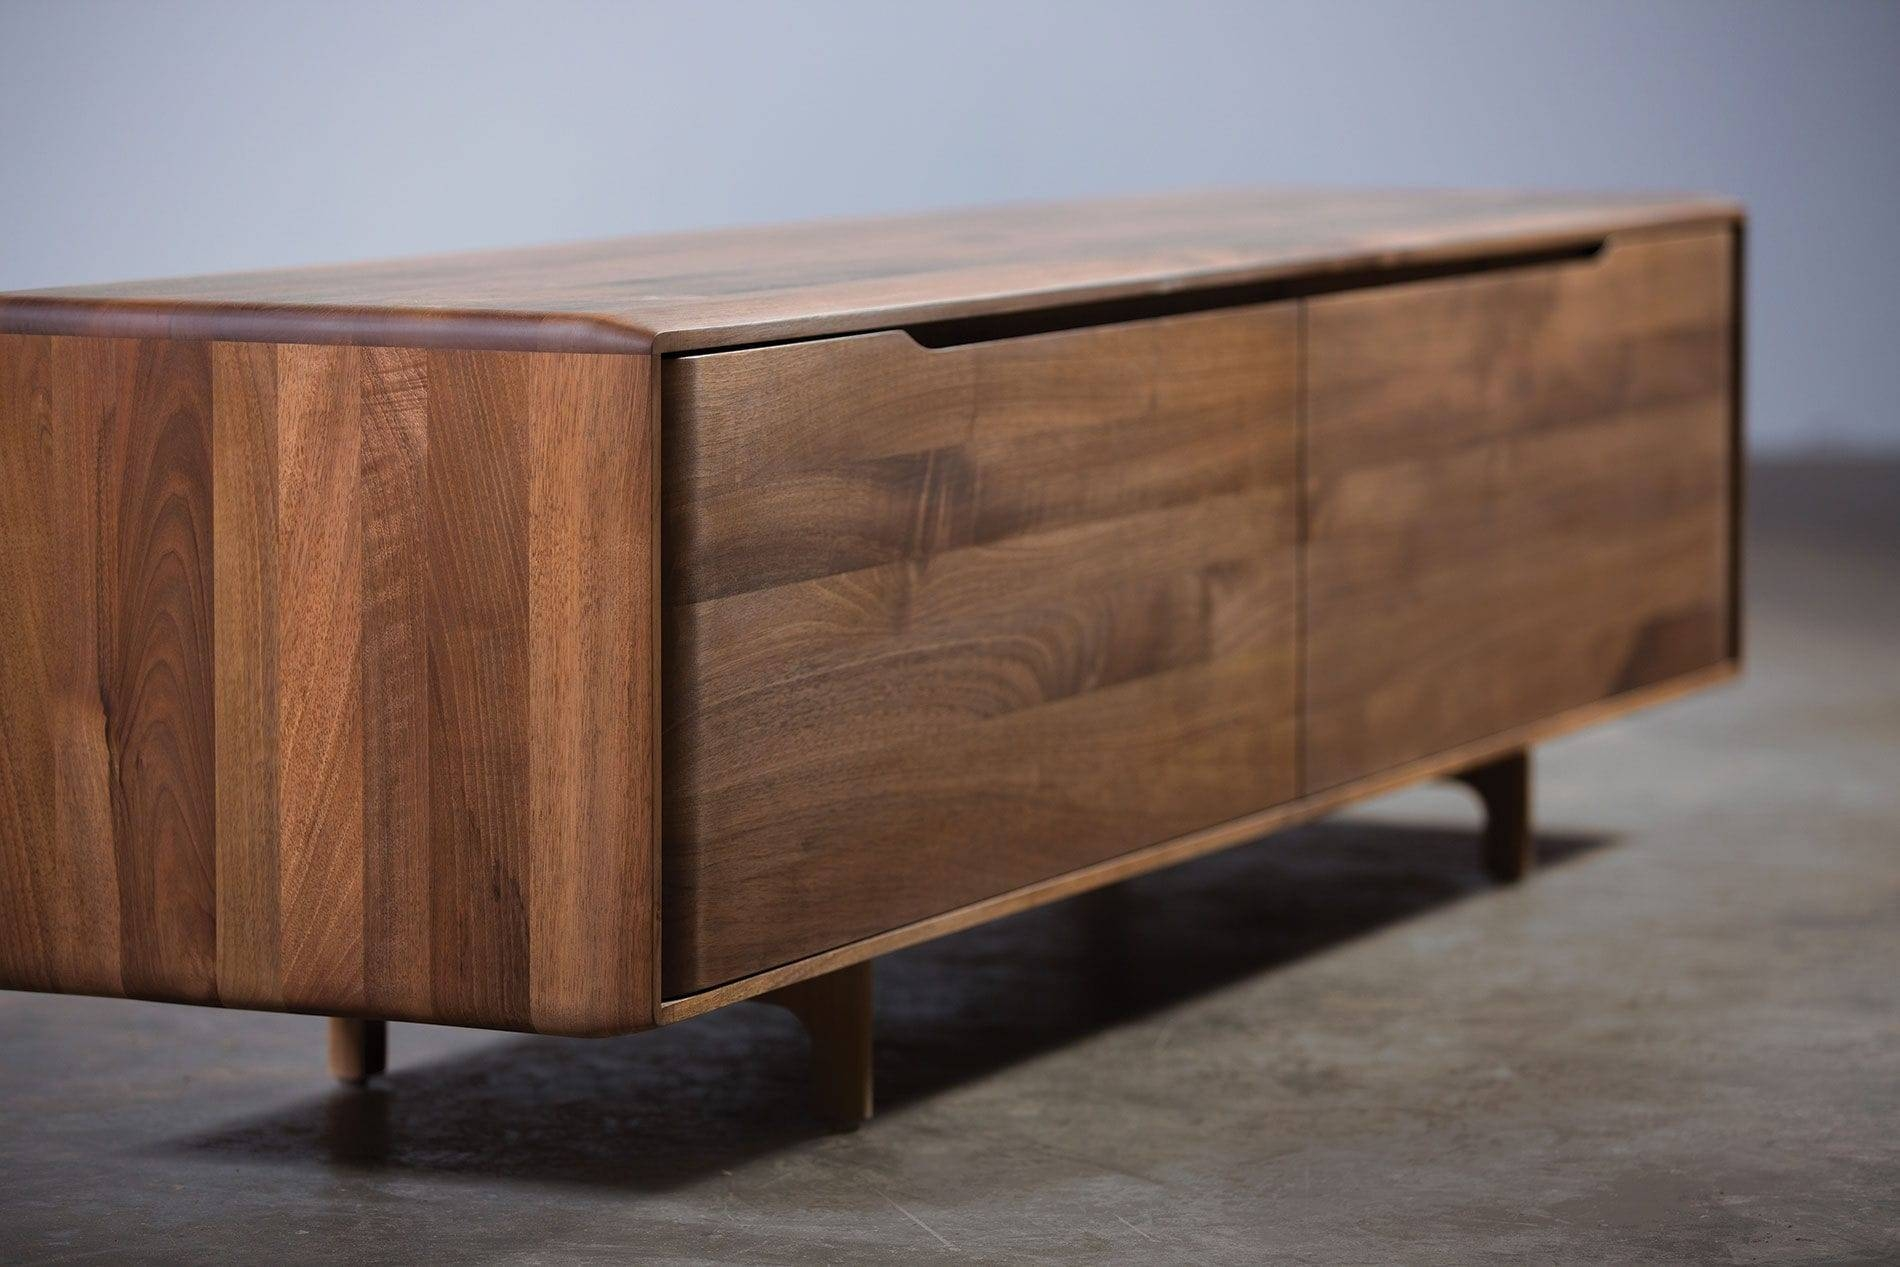 Contemporary Sideboard / Oak / Walnut / Solid Wood - Invito pertaining to Wood Sideboards (Image 5 of 30)